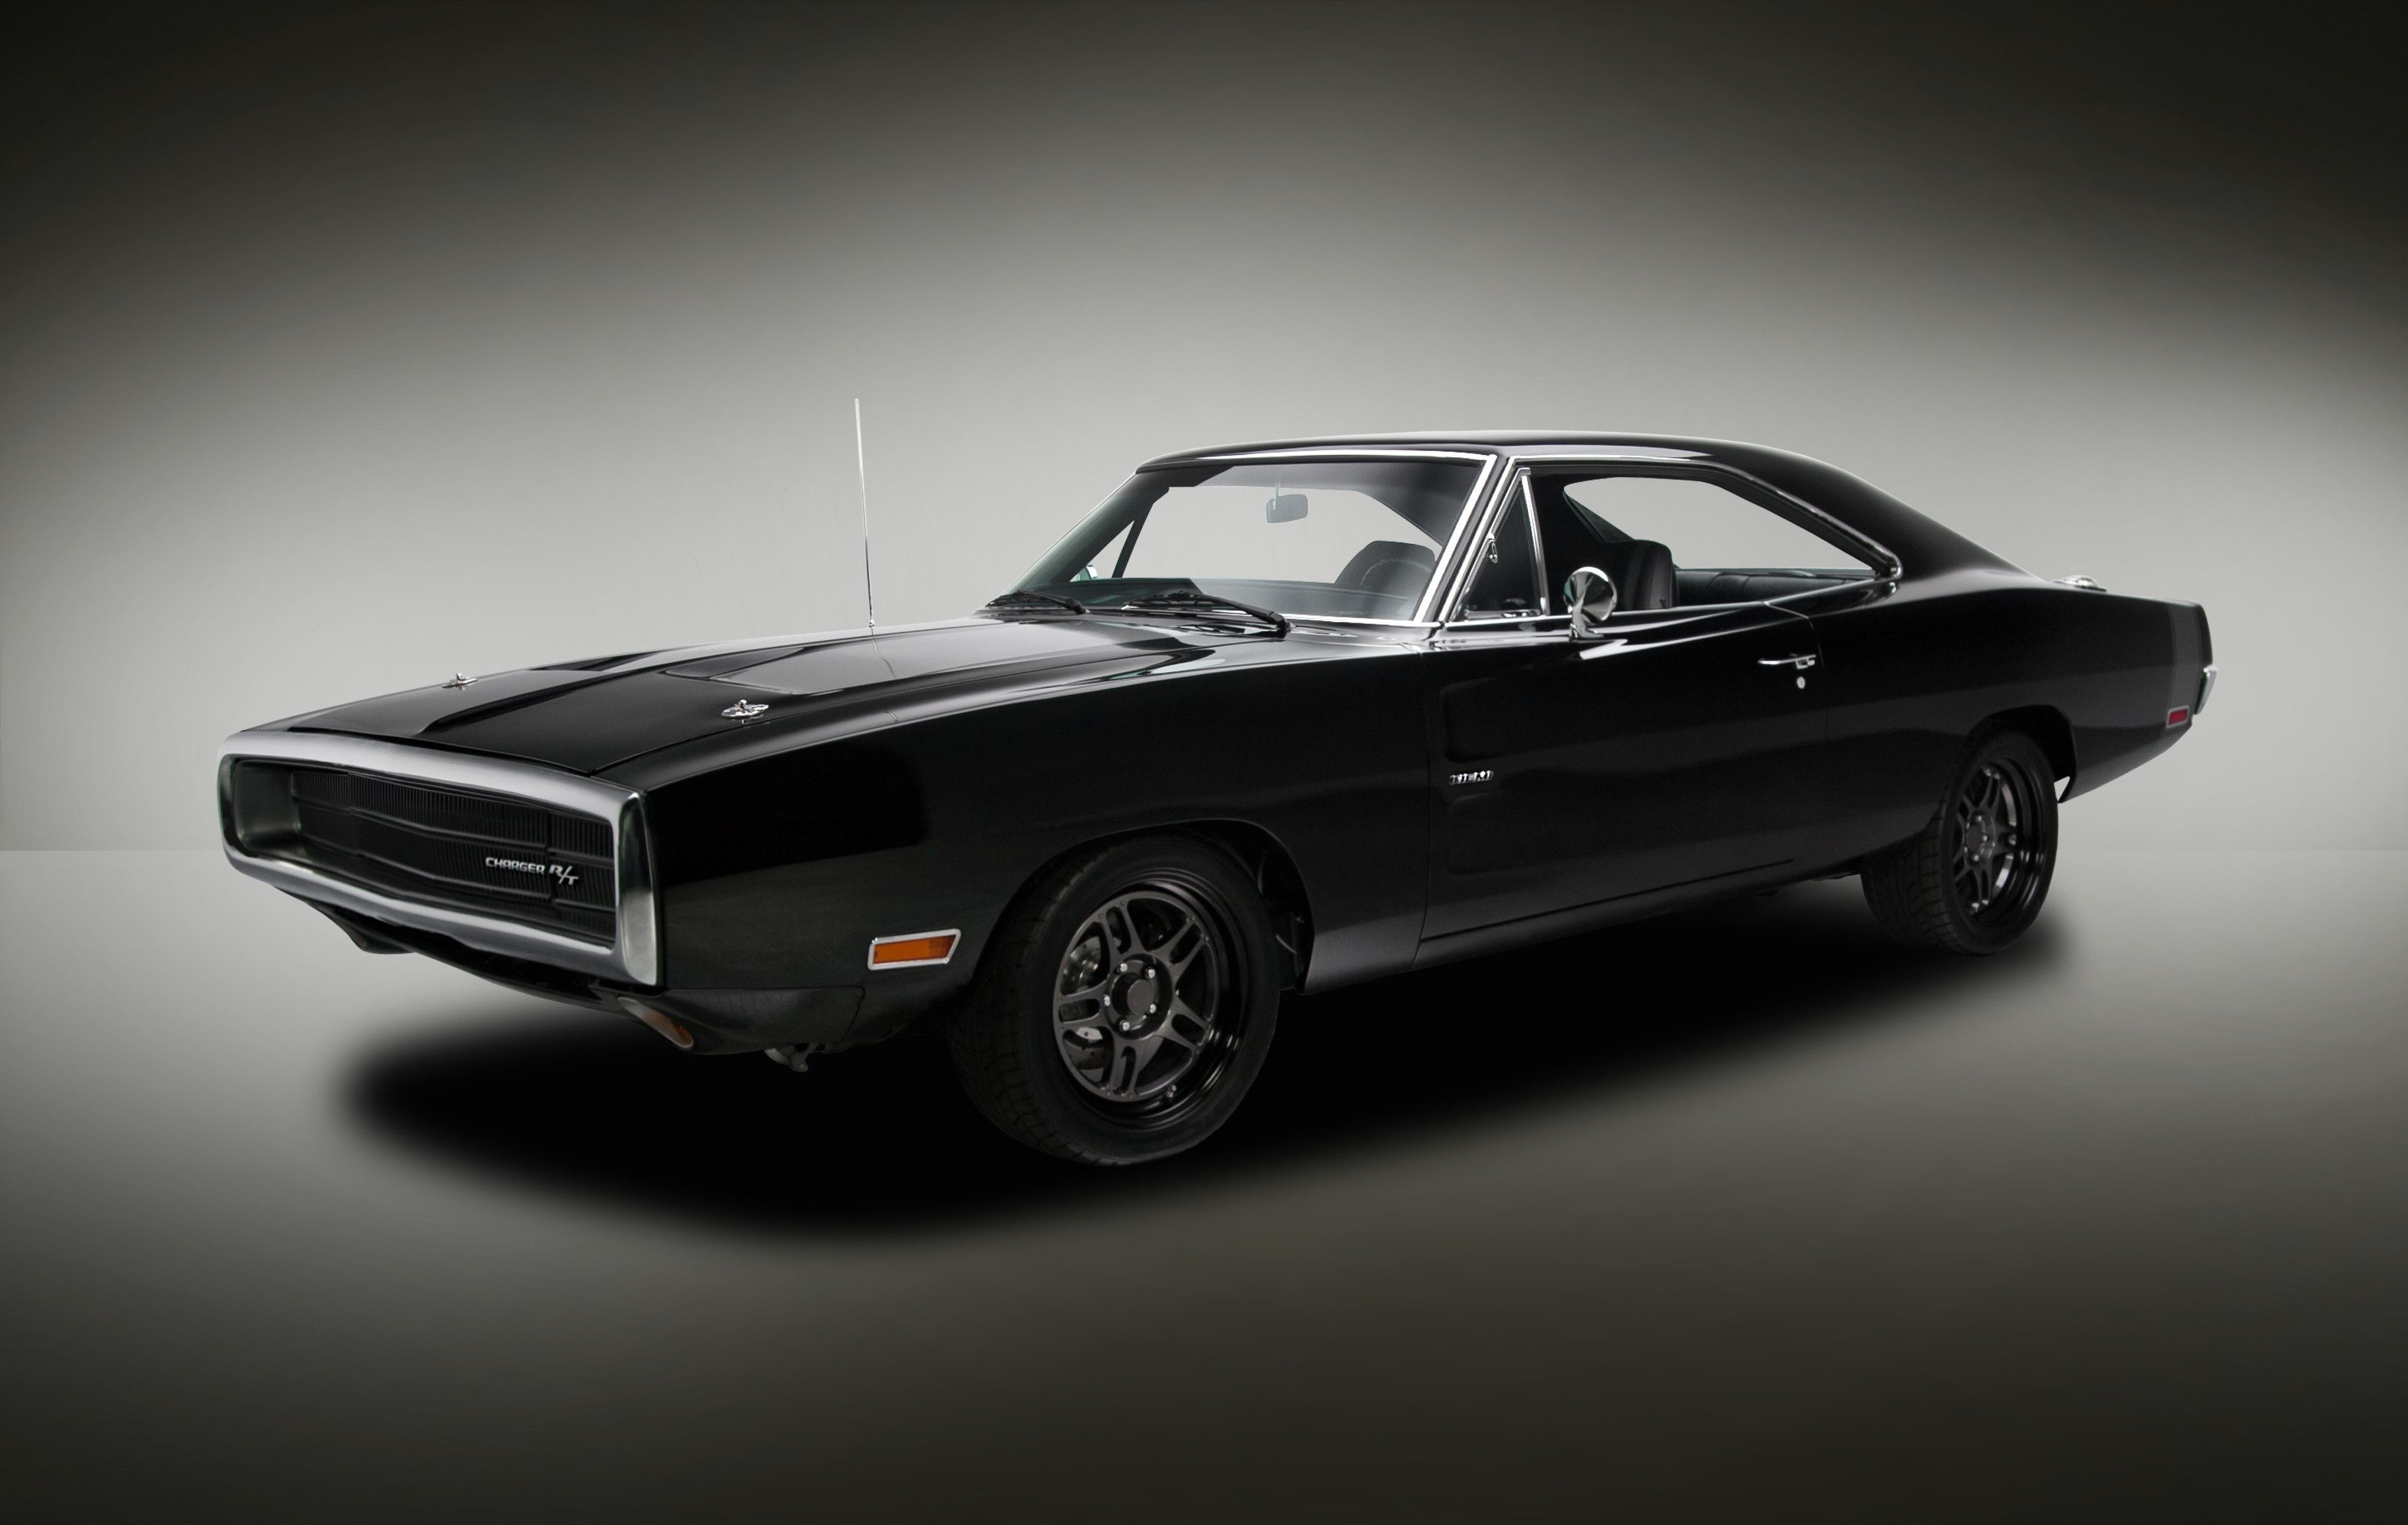 3272x2072 1970 Dodge Charger Wallpapers - Wallpaper Cave